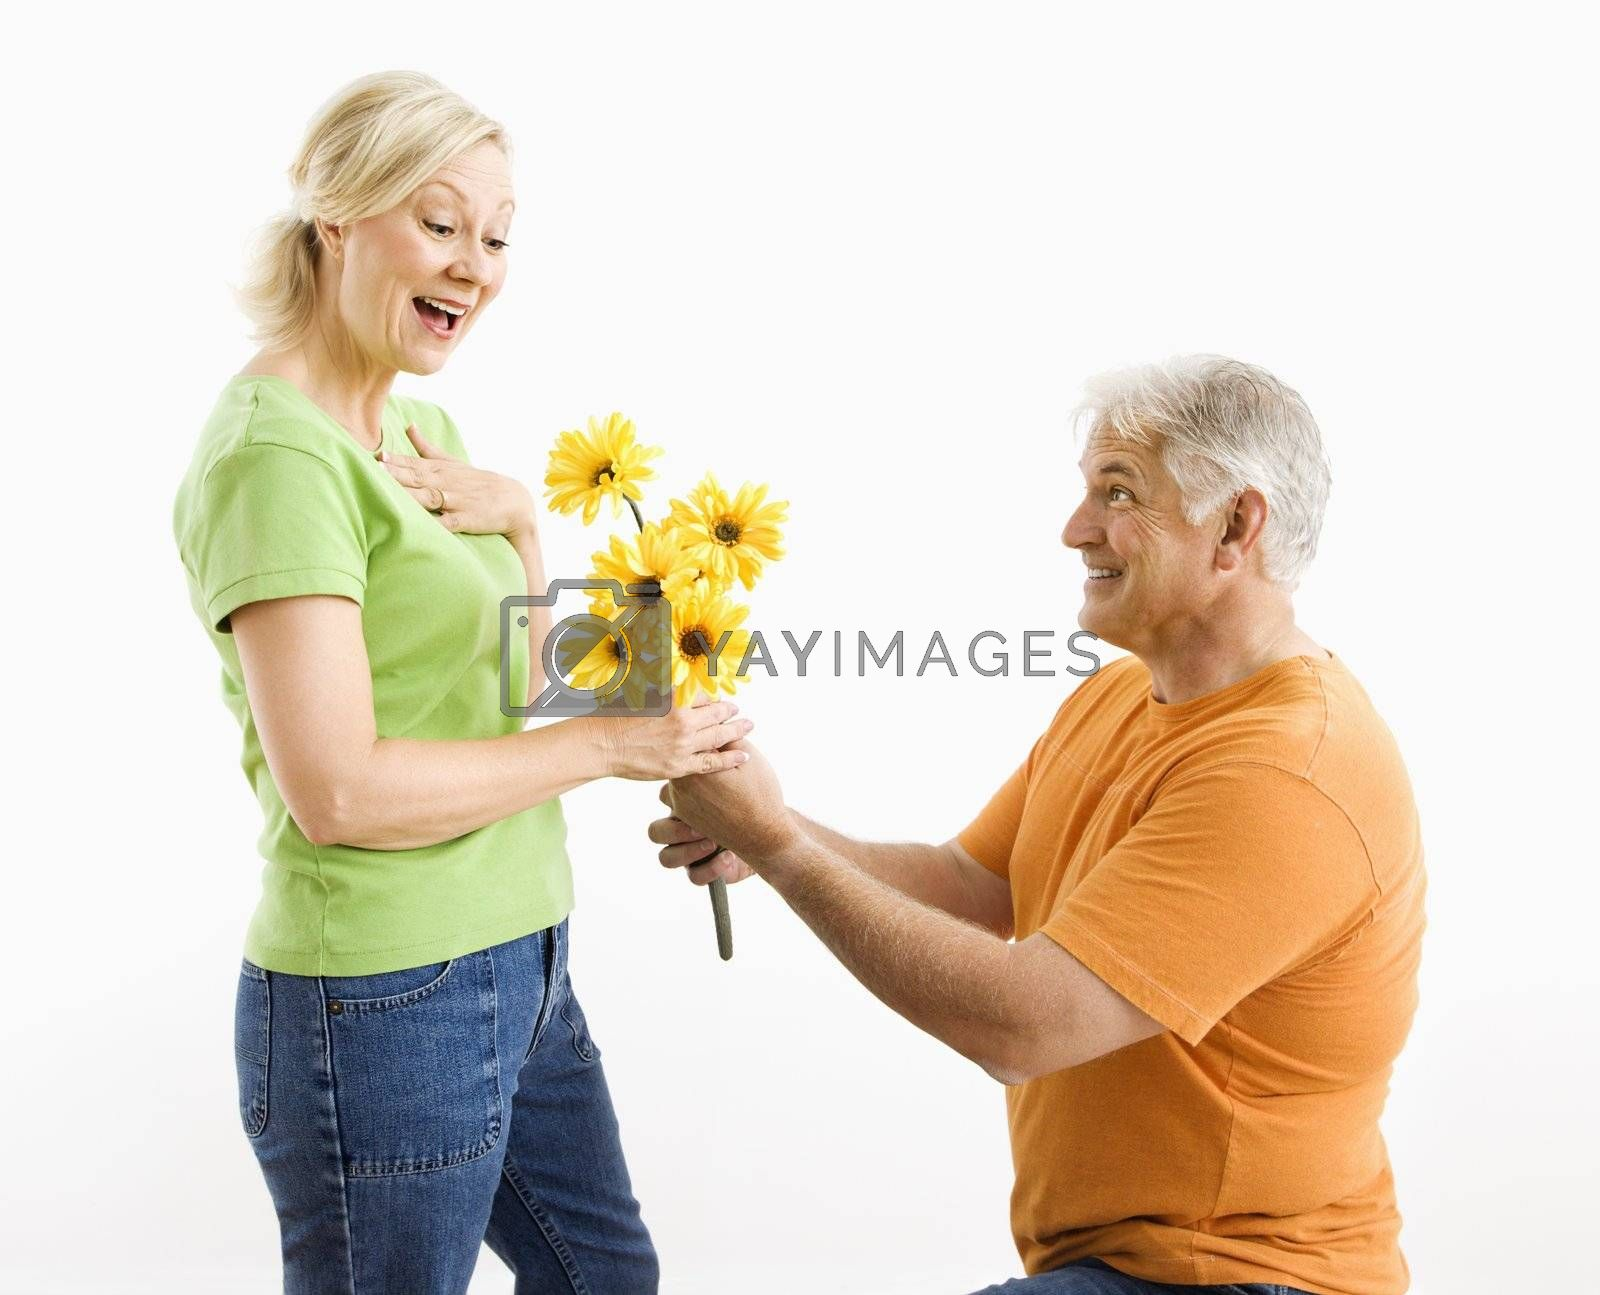 Middle-aged man on bended knee giving woman bouquet of yellow flowers.